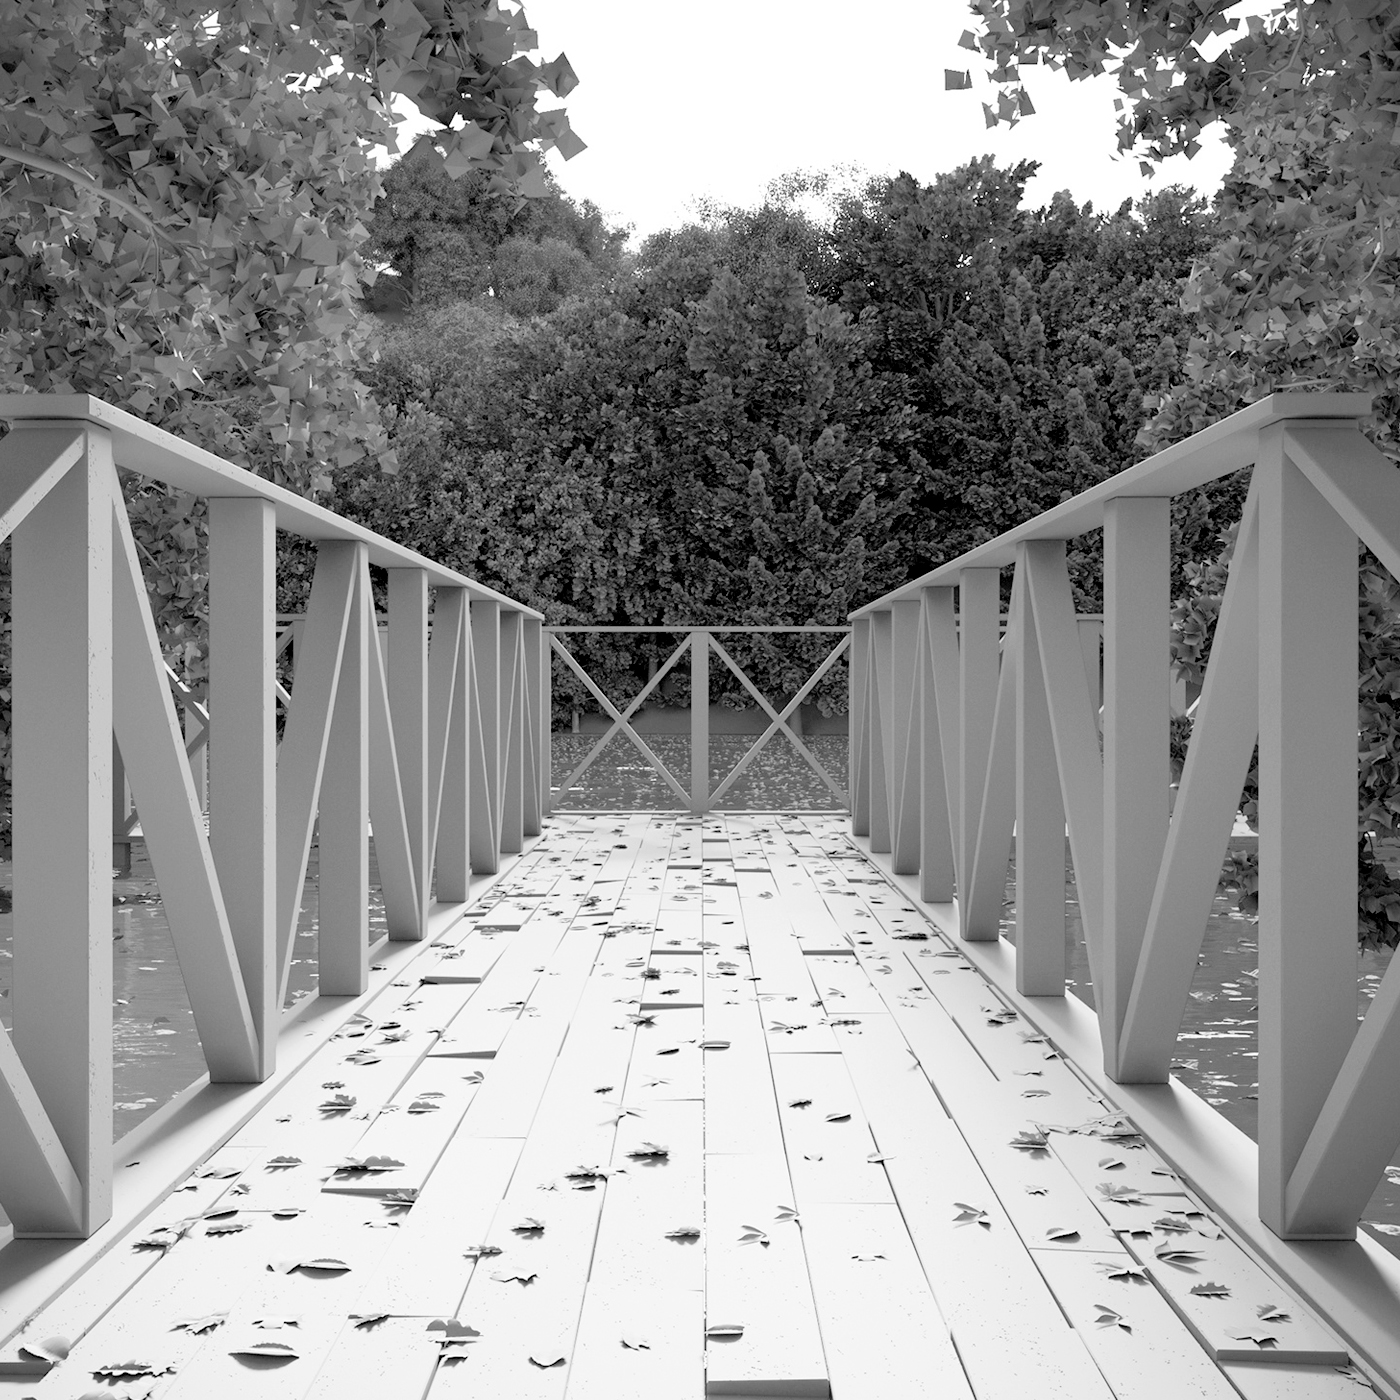 APS_Bridge_01